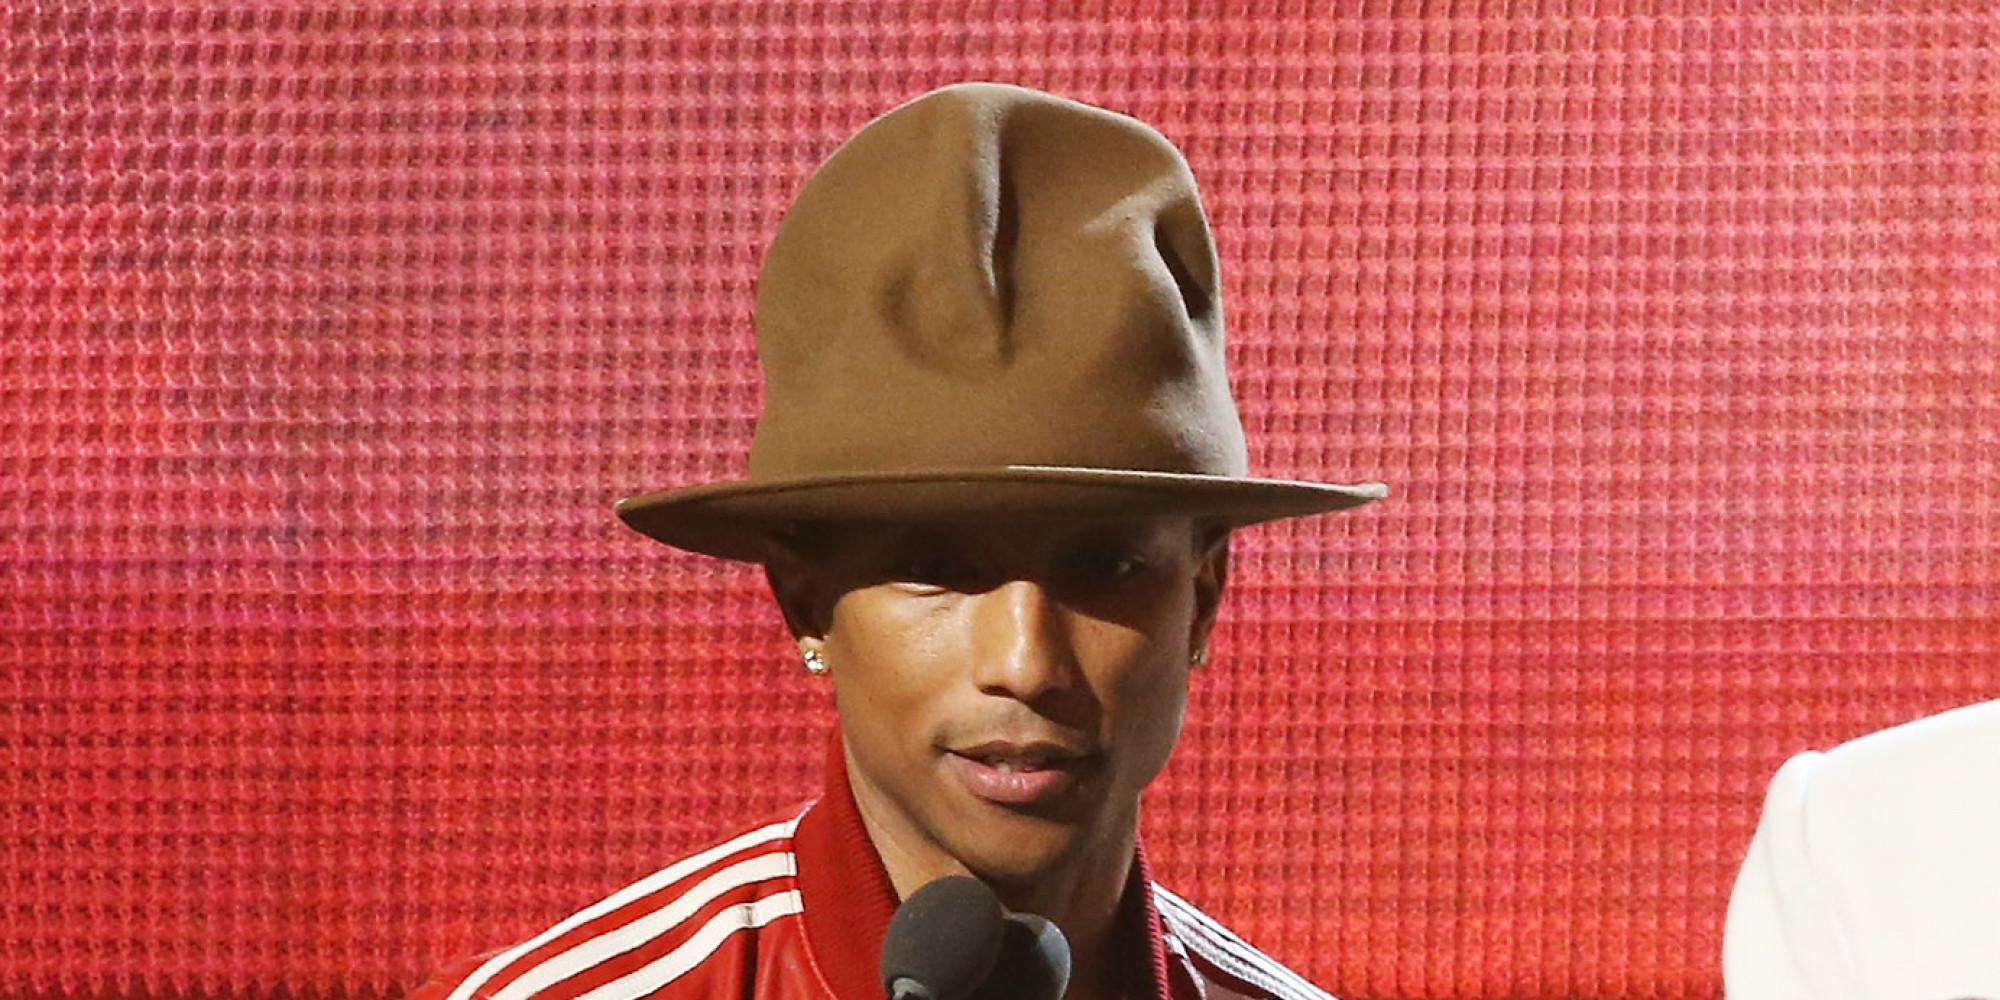 Pharrell Hat The Voice Pharrell's Grammy Hat Sold to